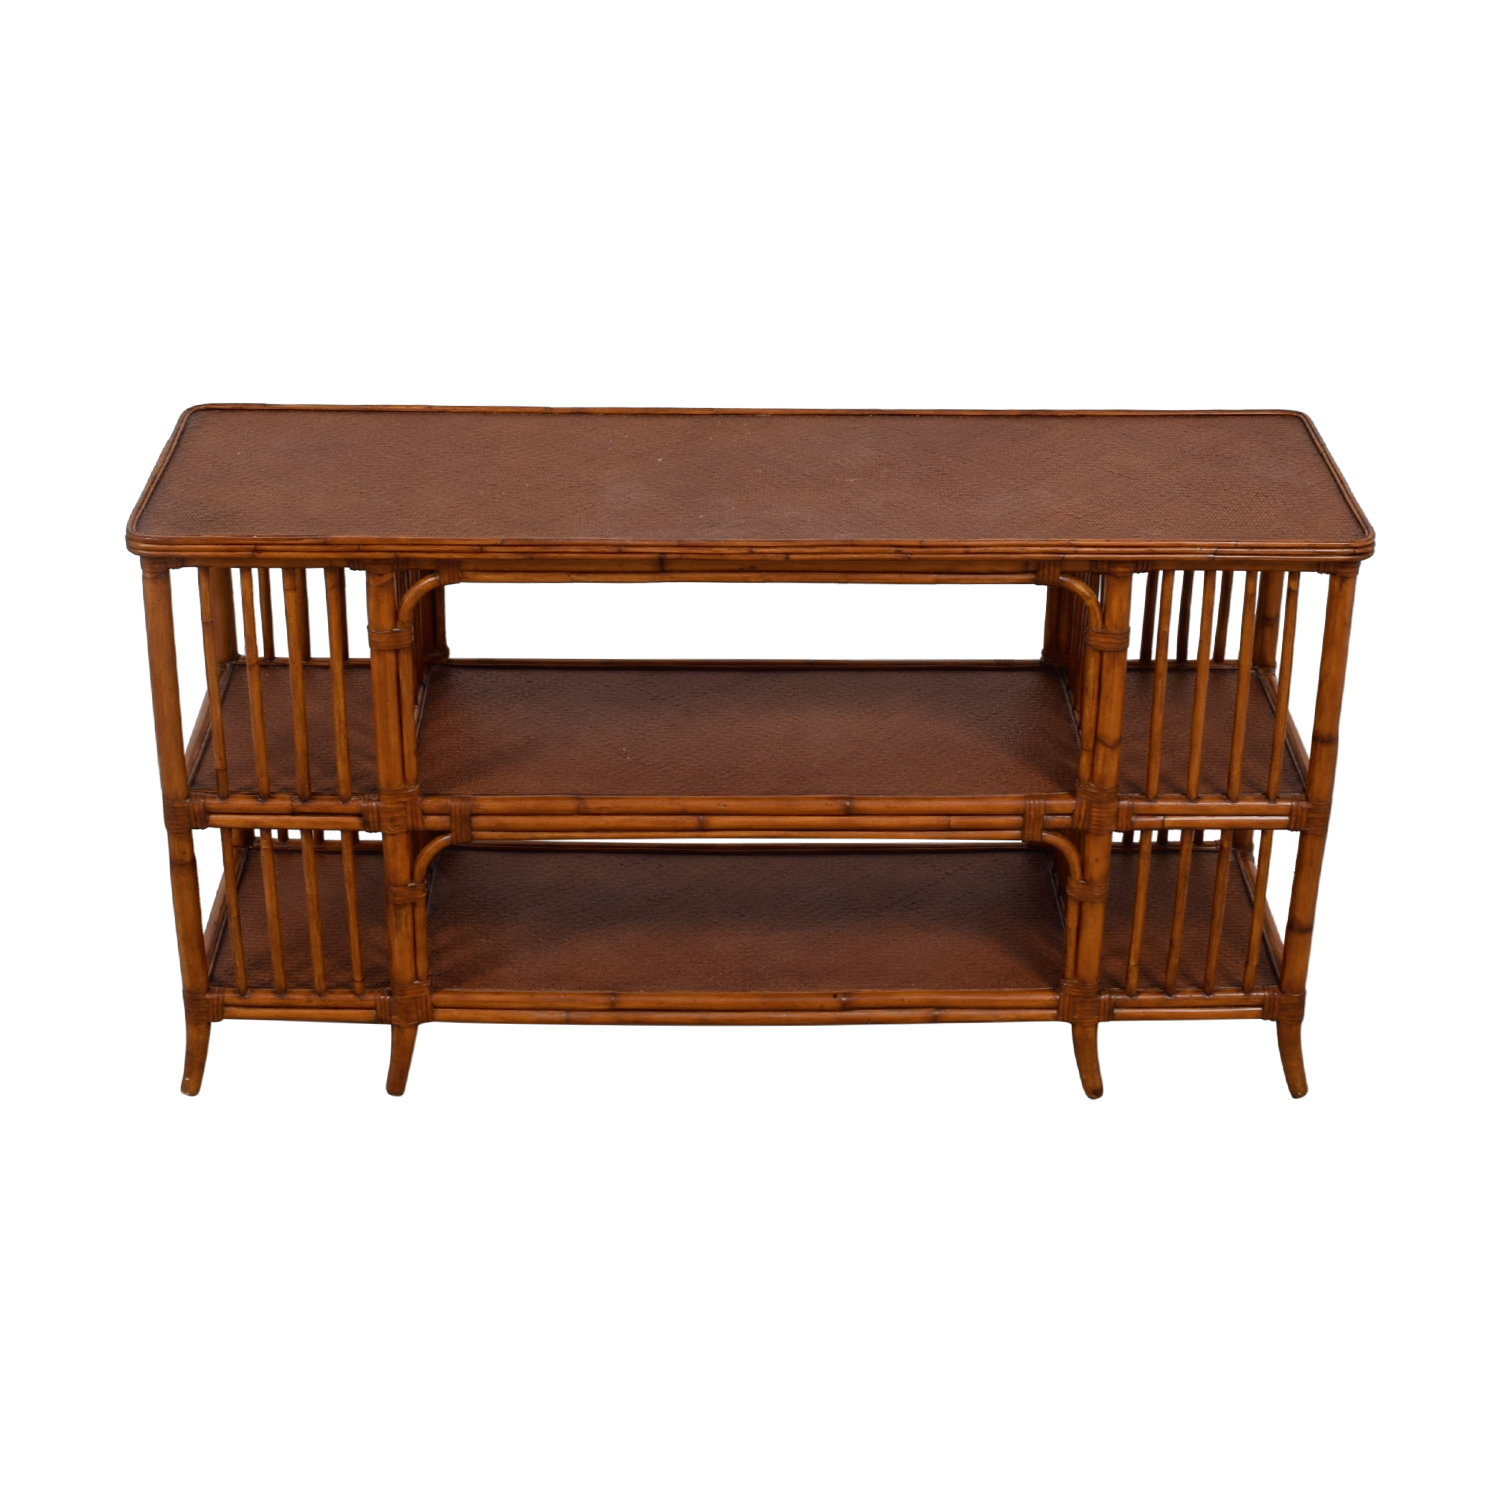 Ethan Allen Ethan Allen Rattan Media Console Sofa Table dimensions